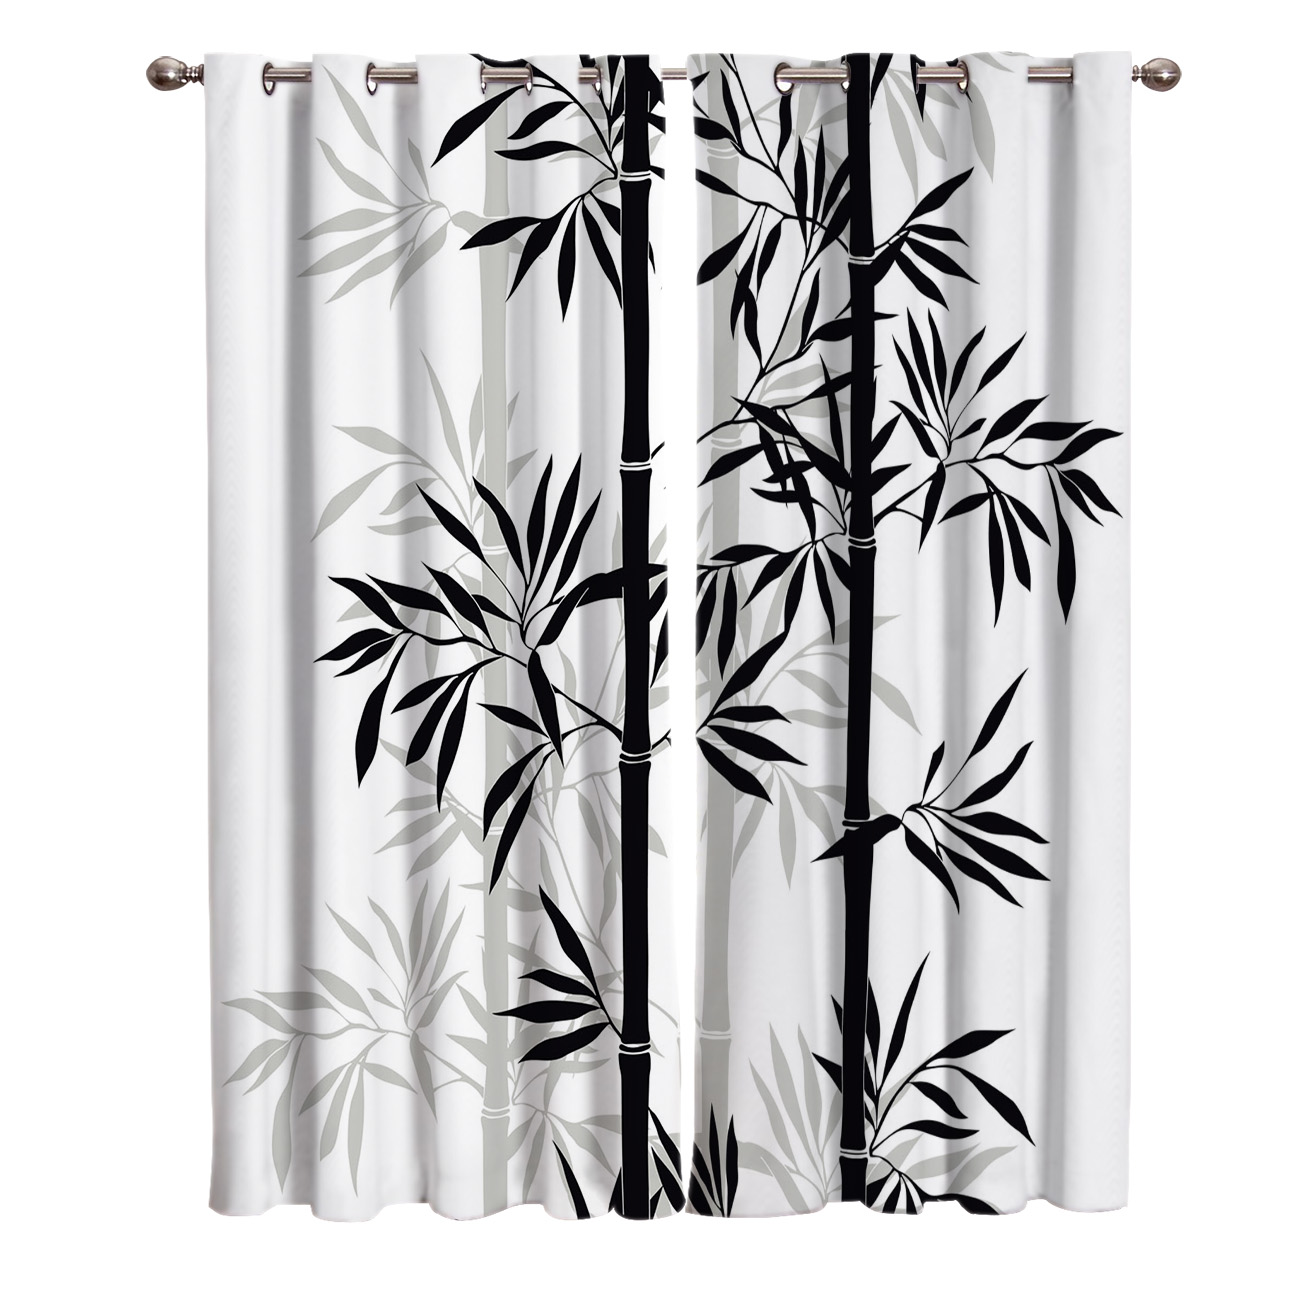 Black White Bamboo Chinese Style Ink Leaf Plant Window Treatments Curtains Valance Curtain Rod Curtains Kitchen Drapes Indoor Curtains Aliexpress